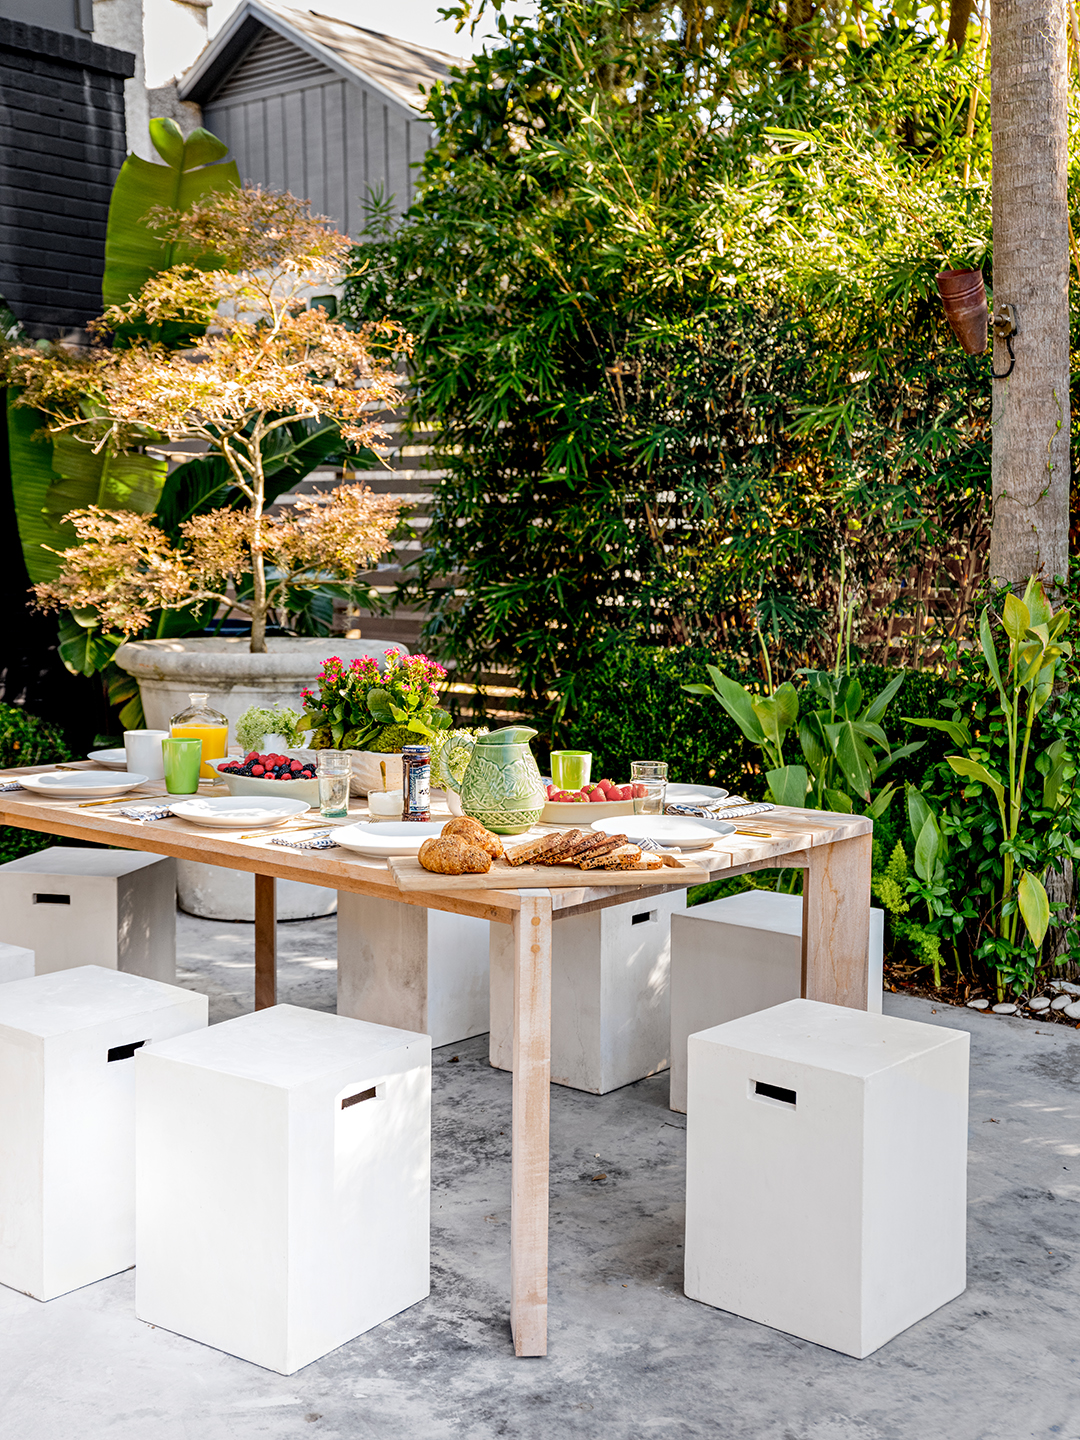 white stools and wood table on concrete deck